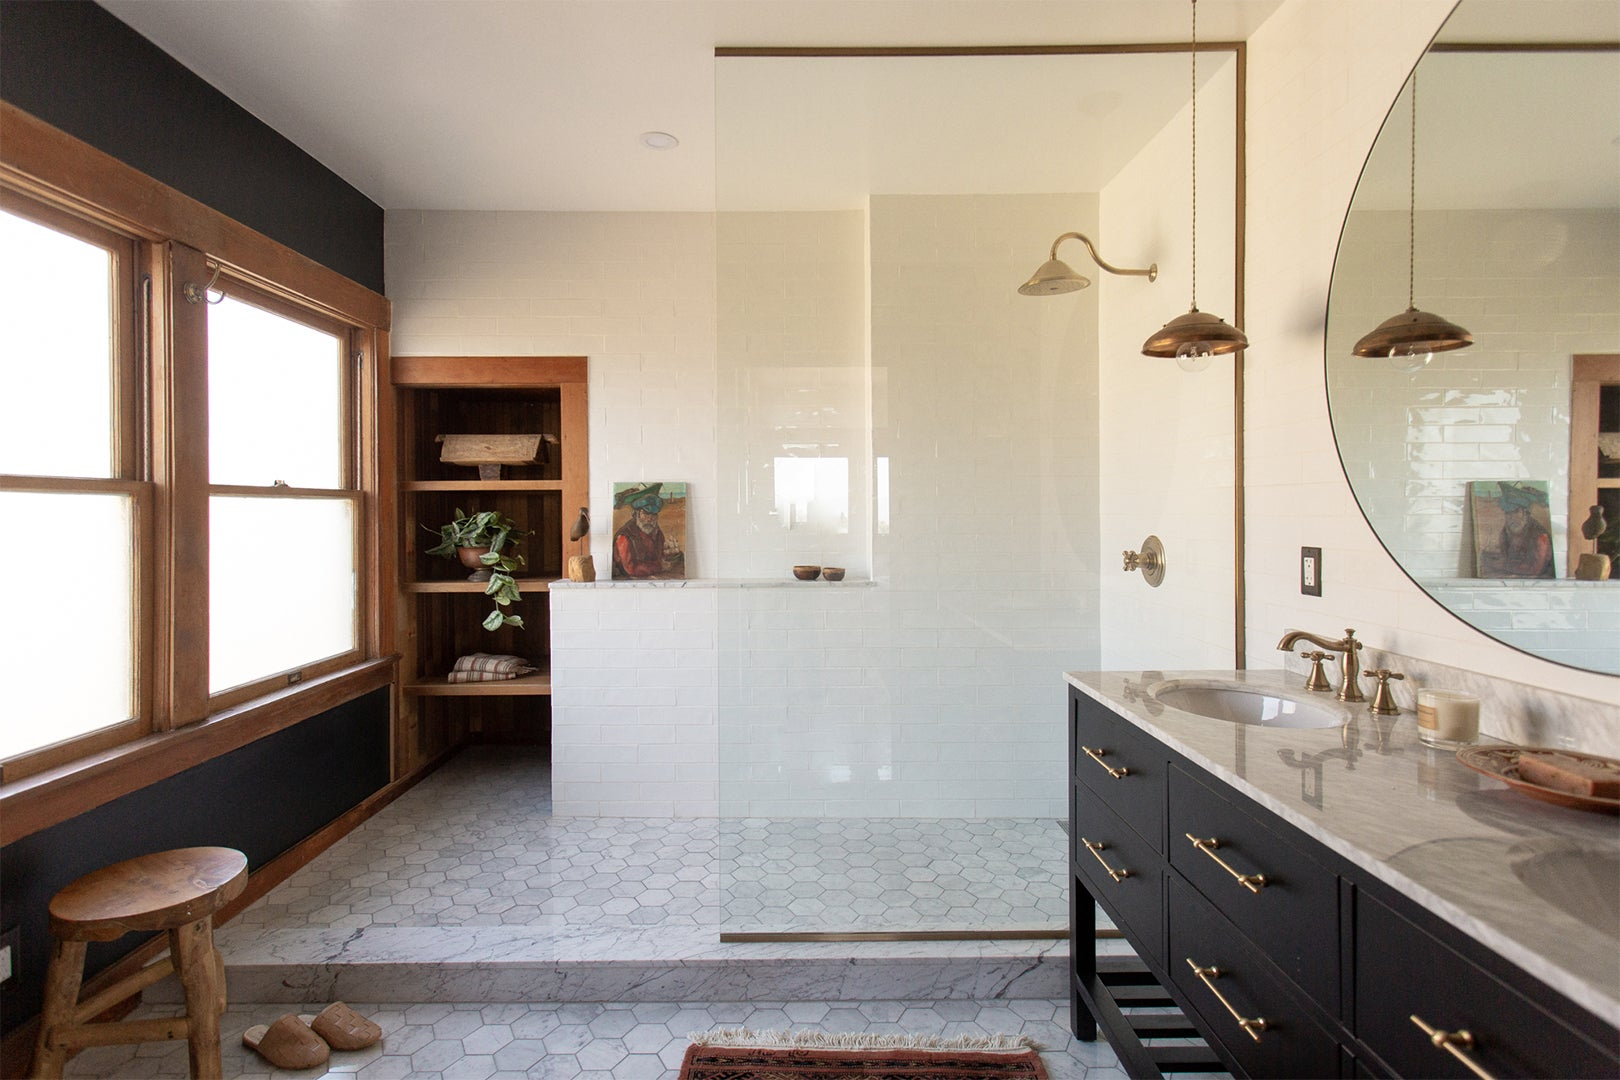 marble bathroom floors and glass partition